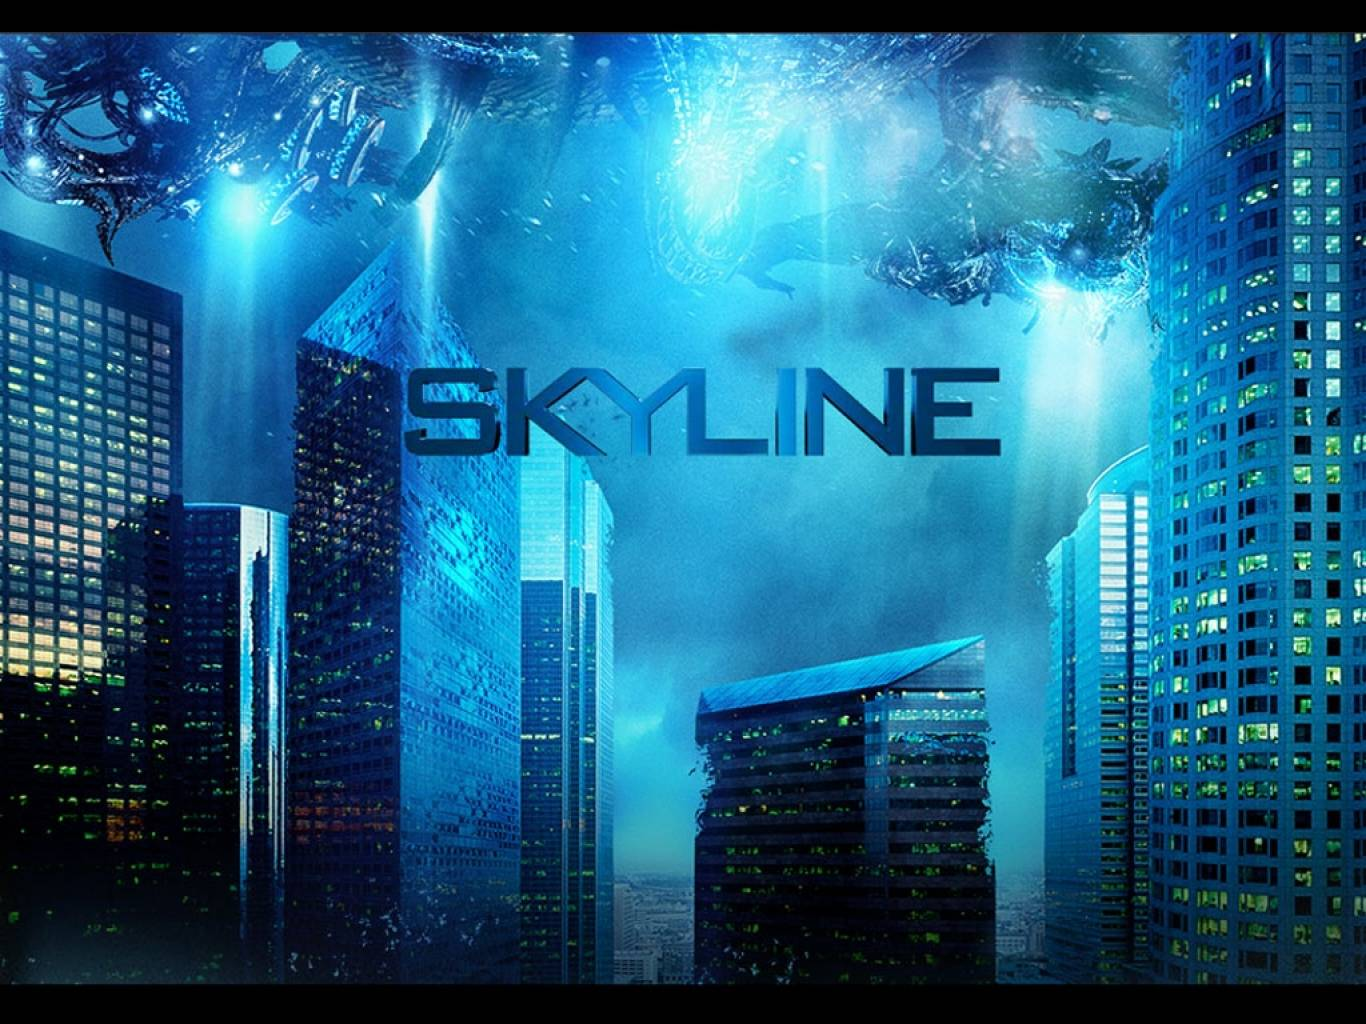 Skyline Wallpapers